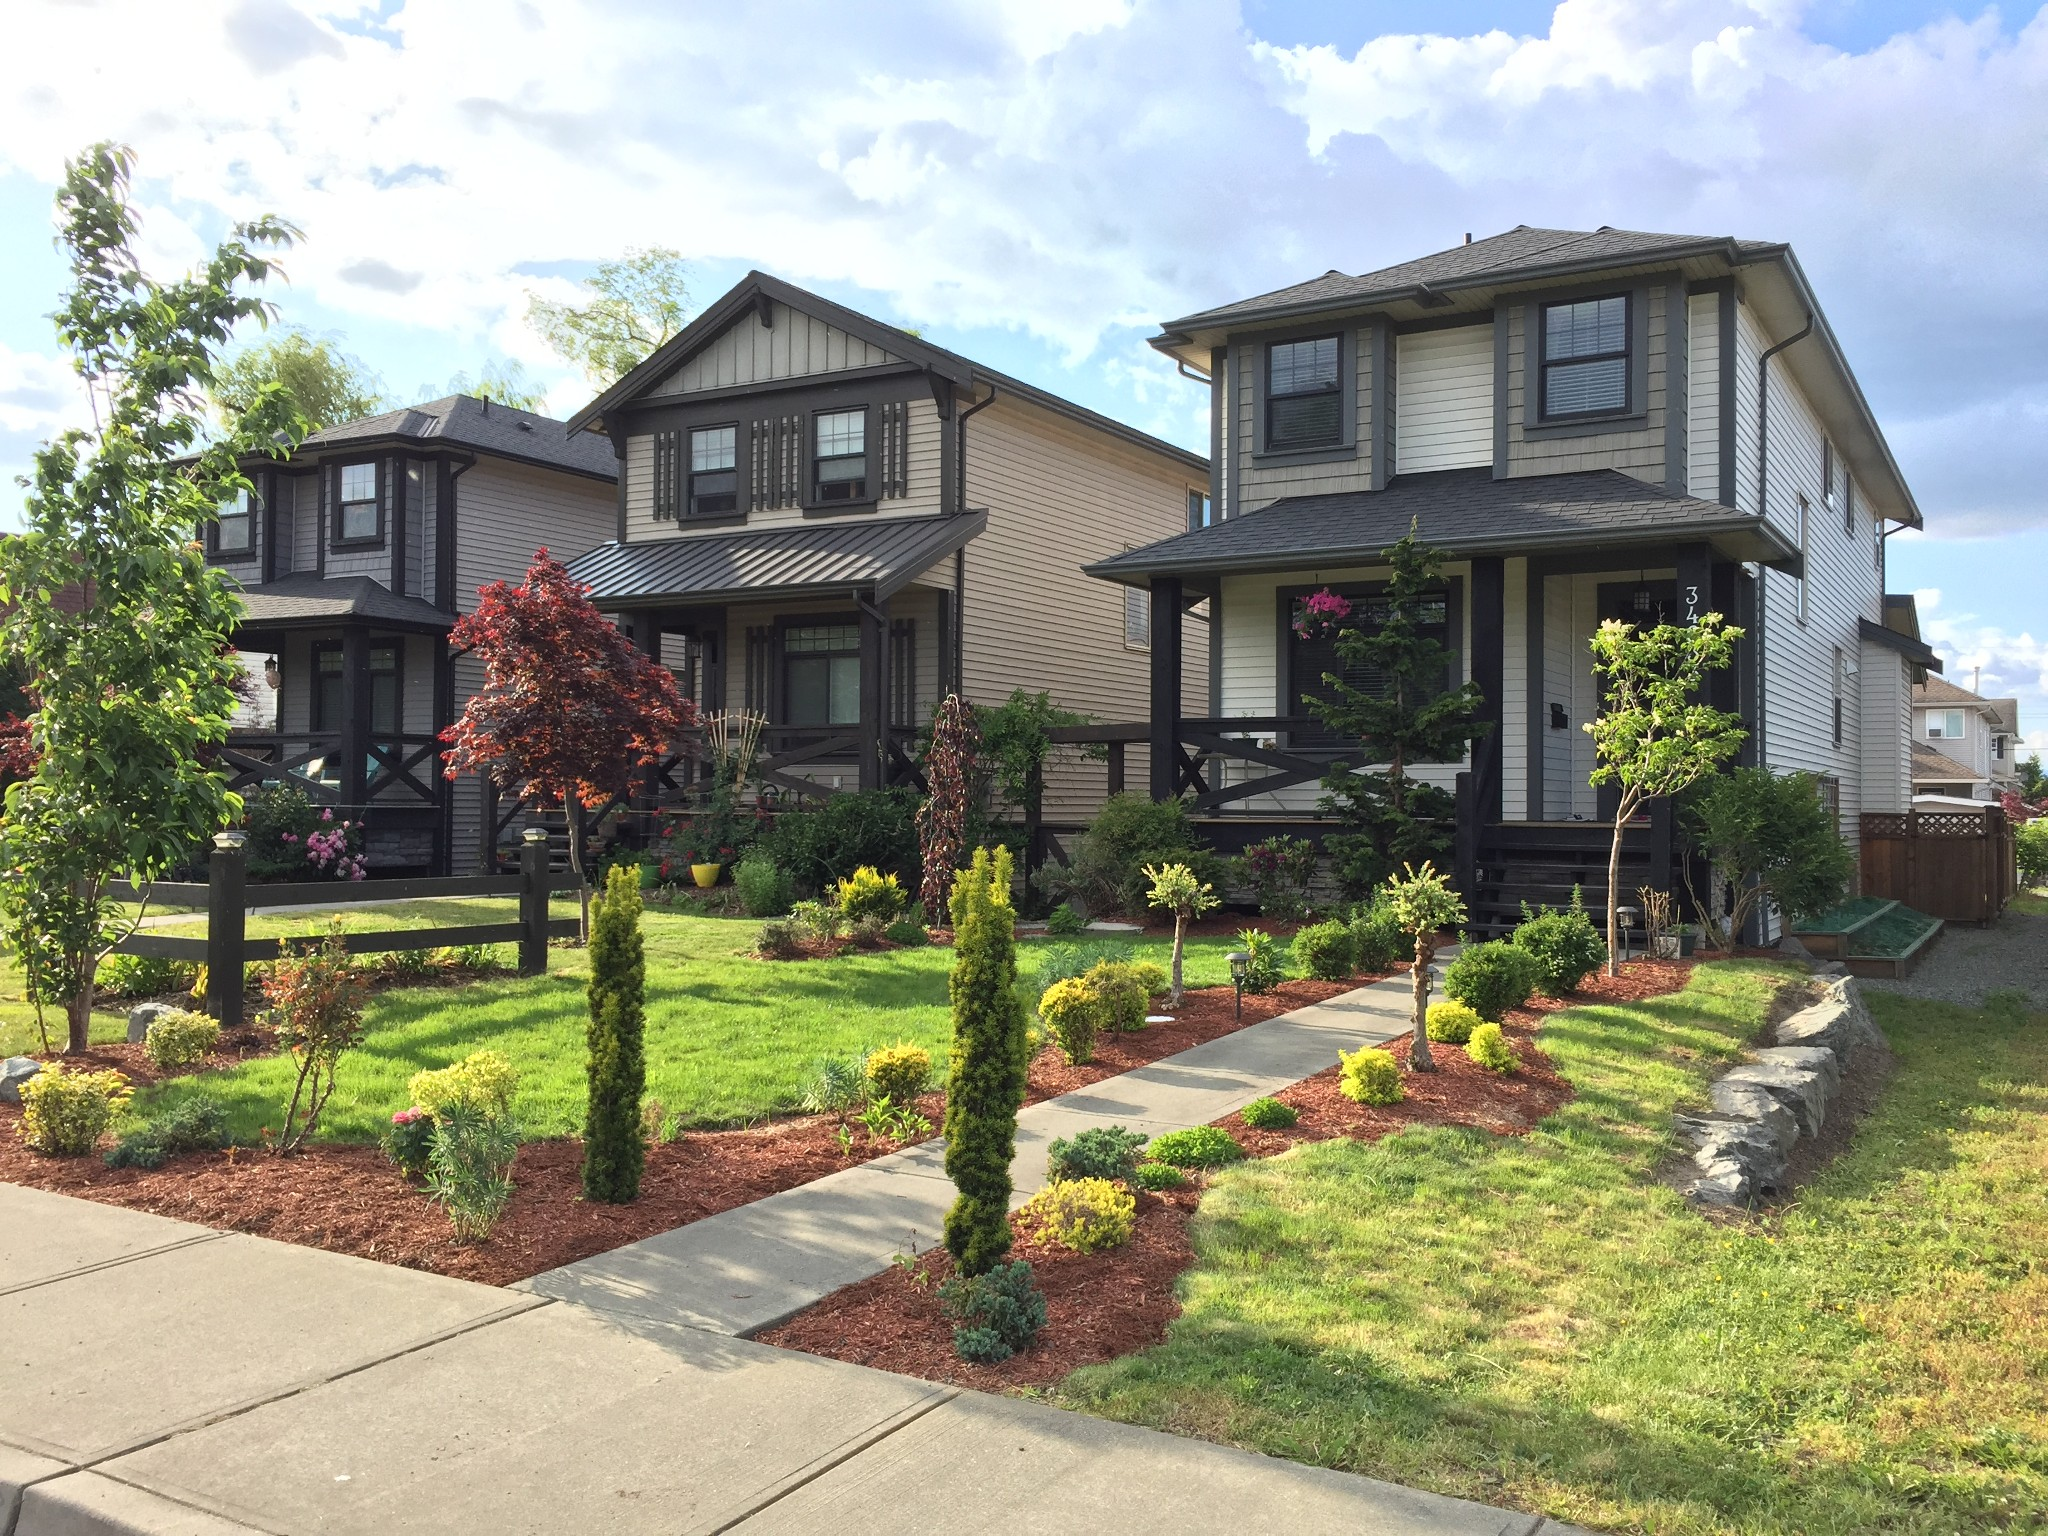 34633 4th Ave, Abbotsford, Huntington Village, Desirable Family Home!